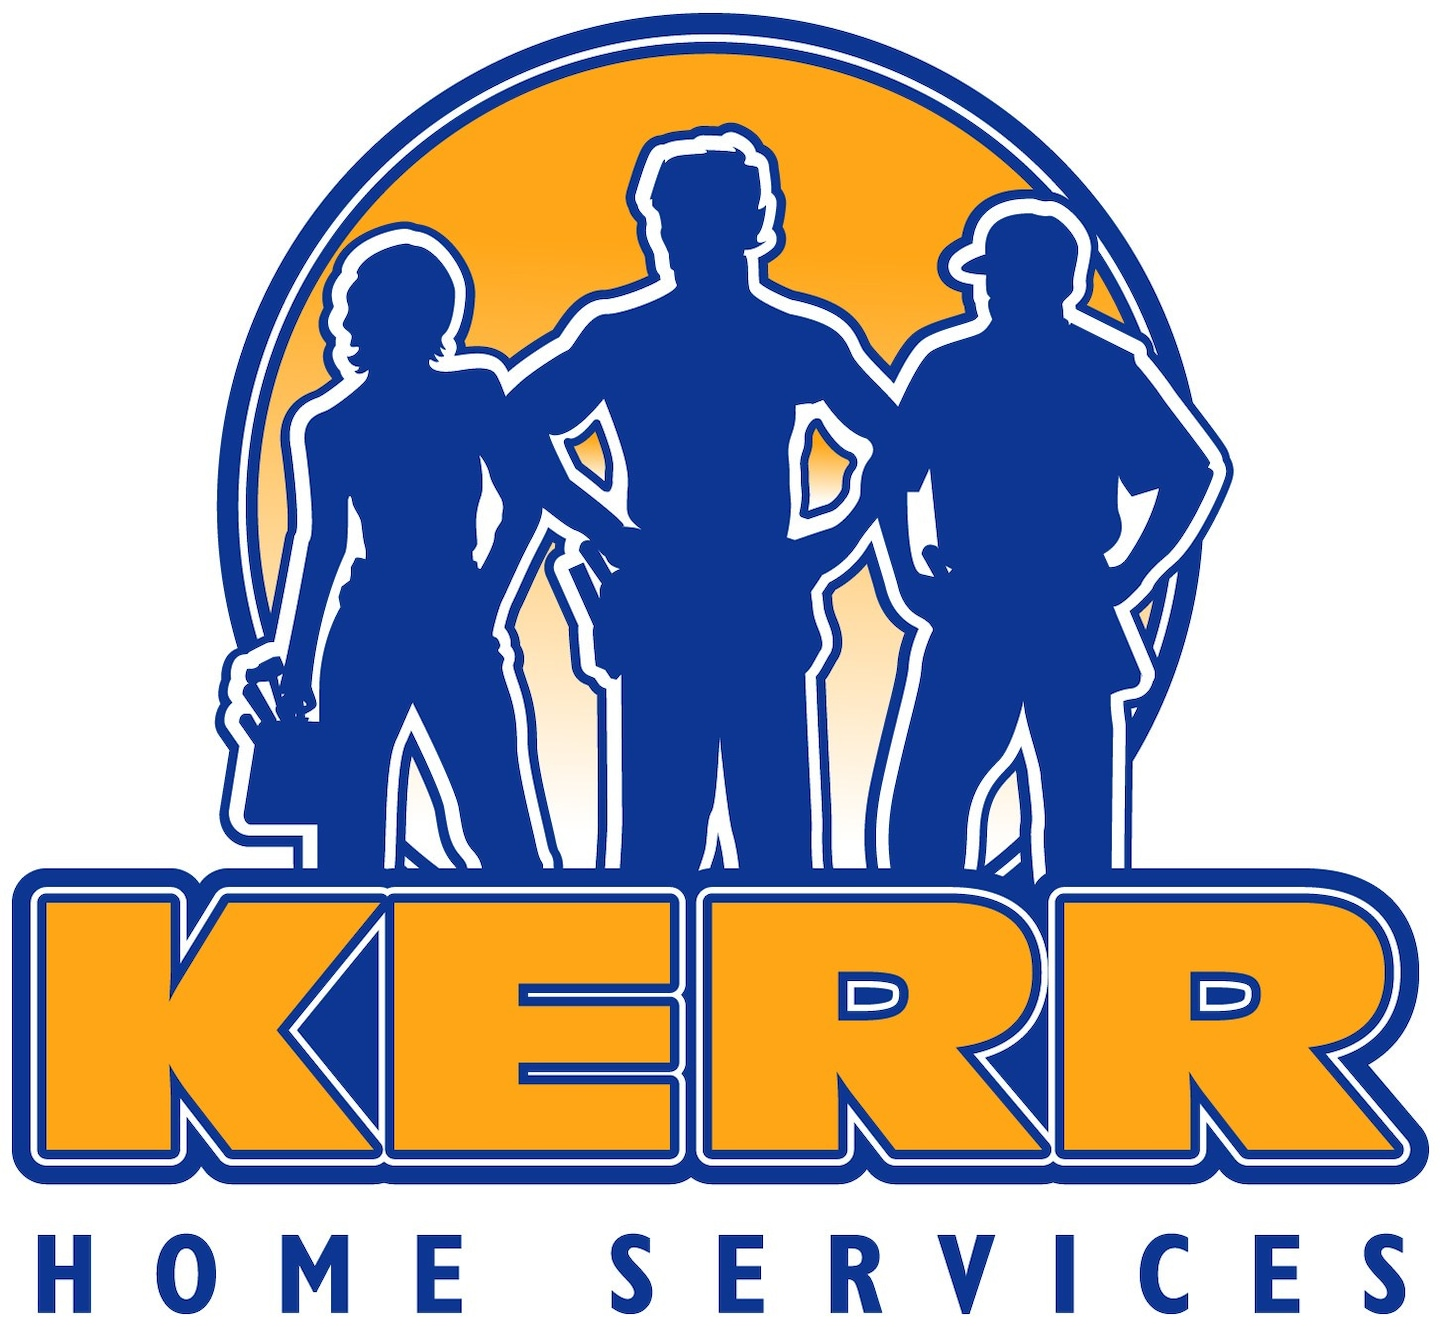 Kerr Home Services